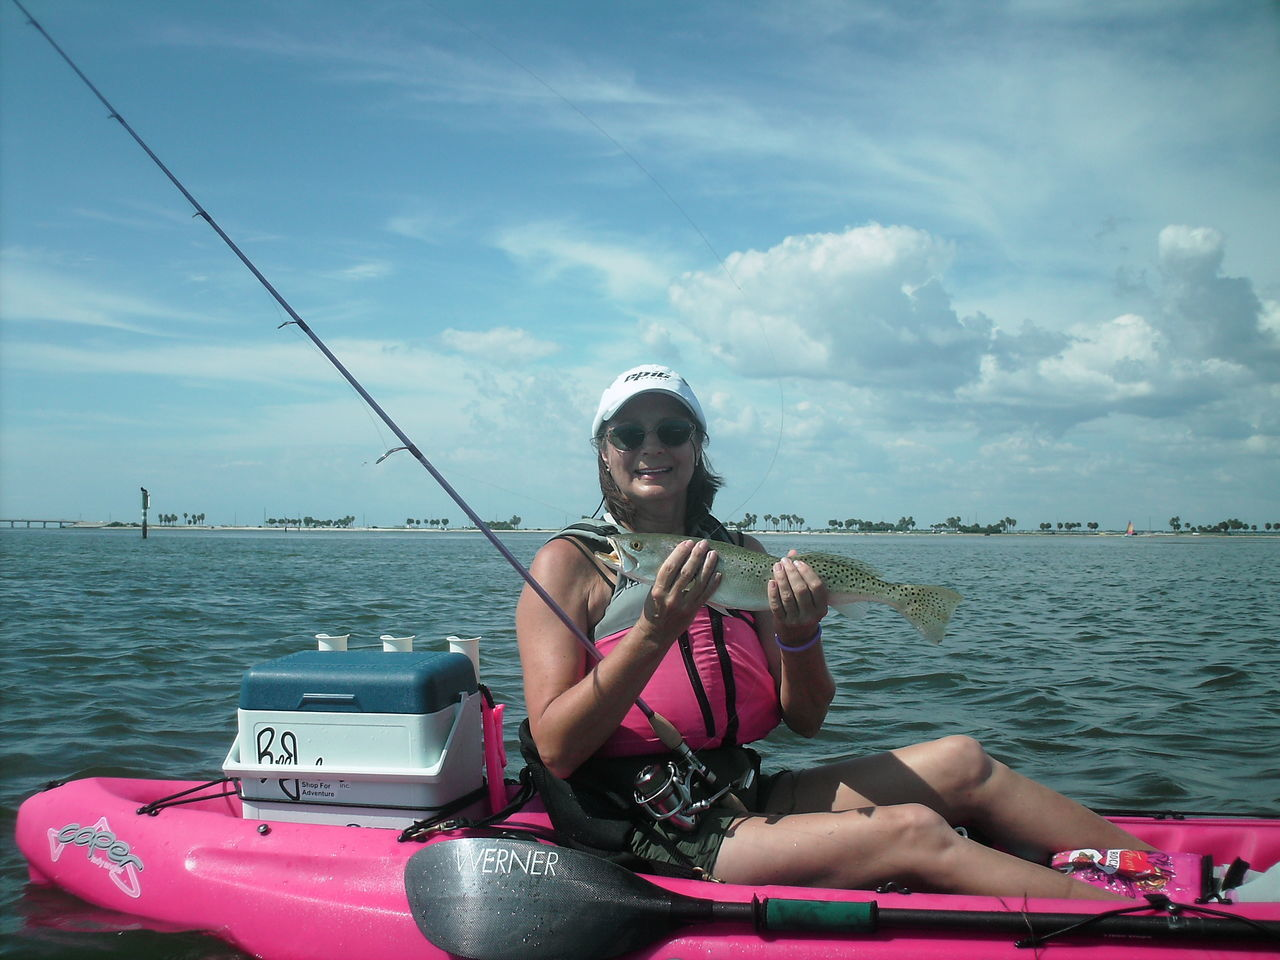 Kayak Fishing Kayaker Fishing Sportswoman Power Of Pink Weekend Activities Female Adult Fish Fisherman Kayak Kayaking Watersports Weekend Warrior Florida Life Female Weekend Warriors Catch Of The Day Florida Fishing People